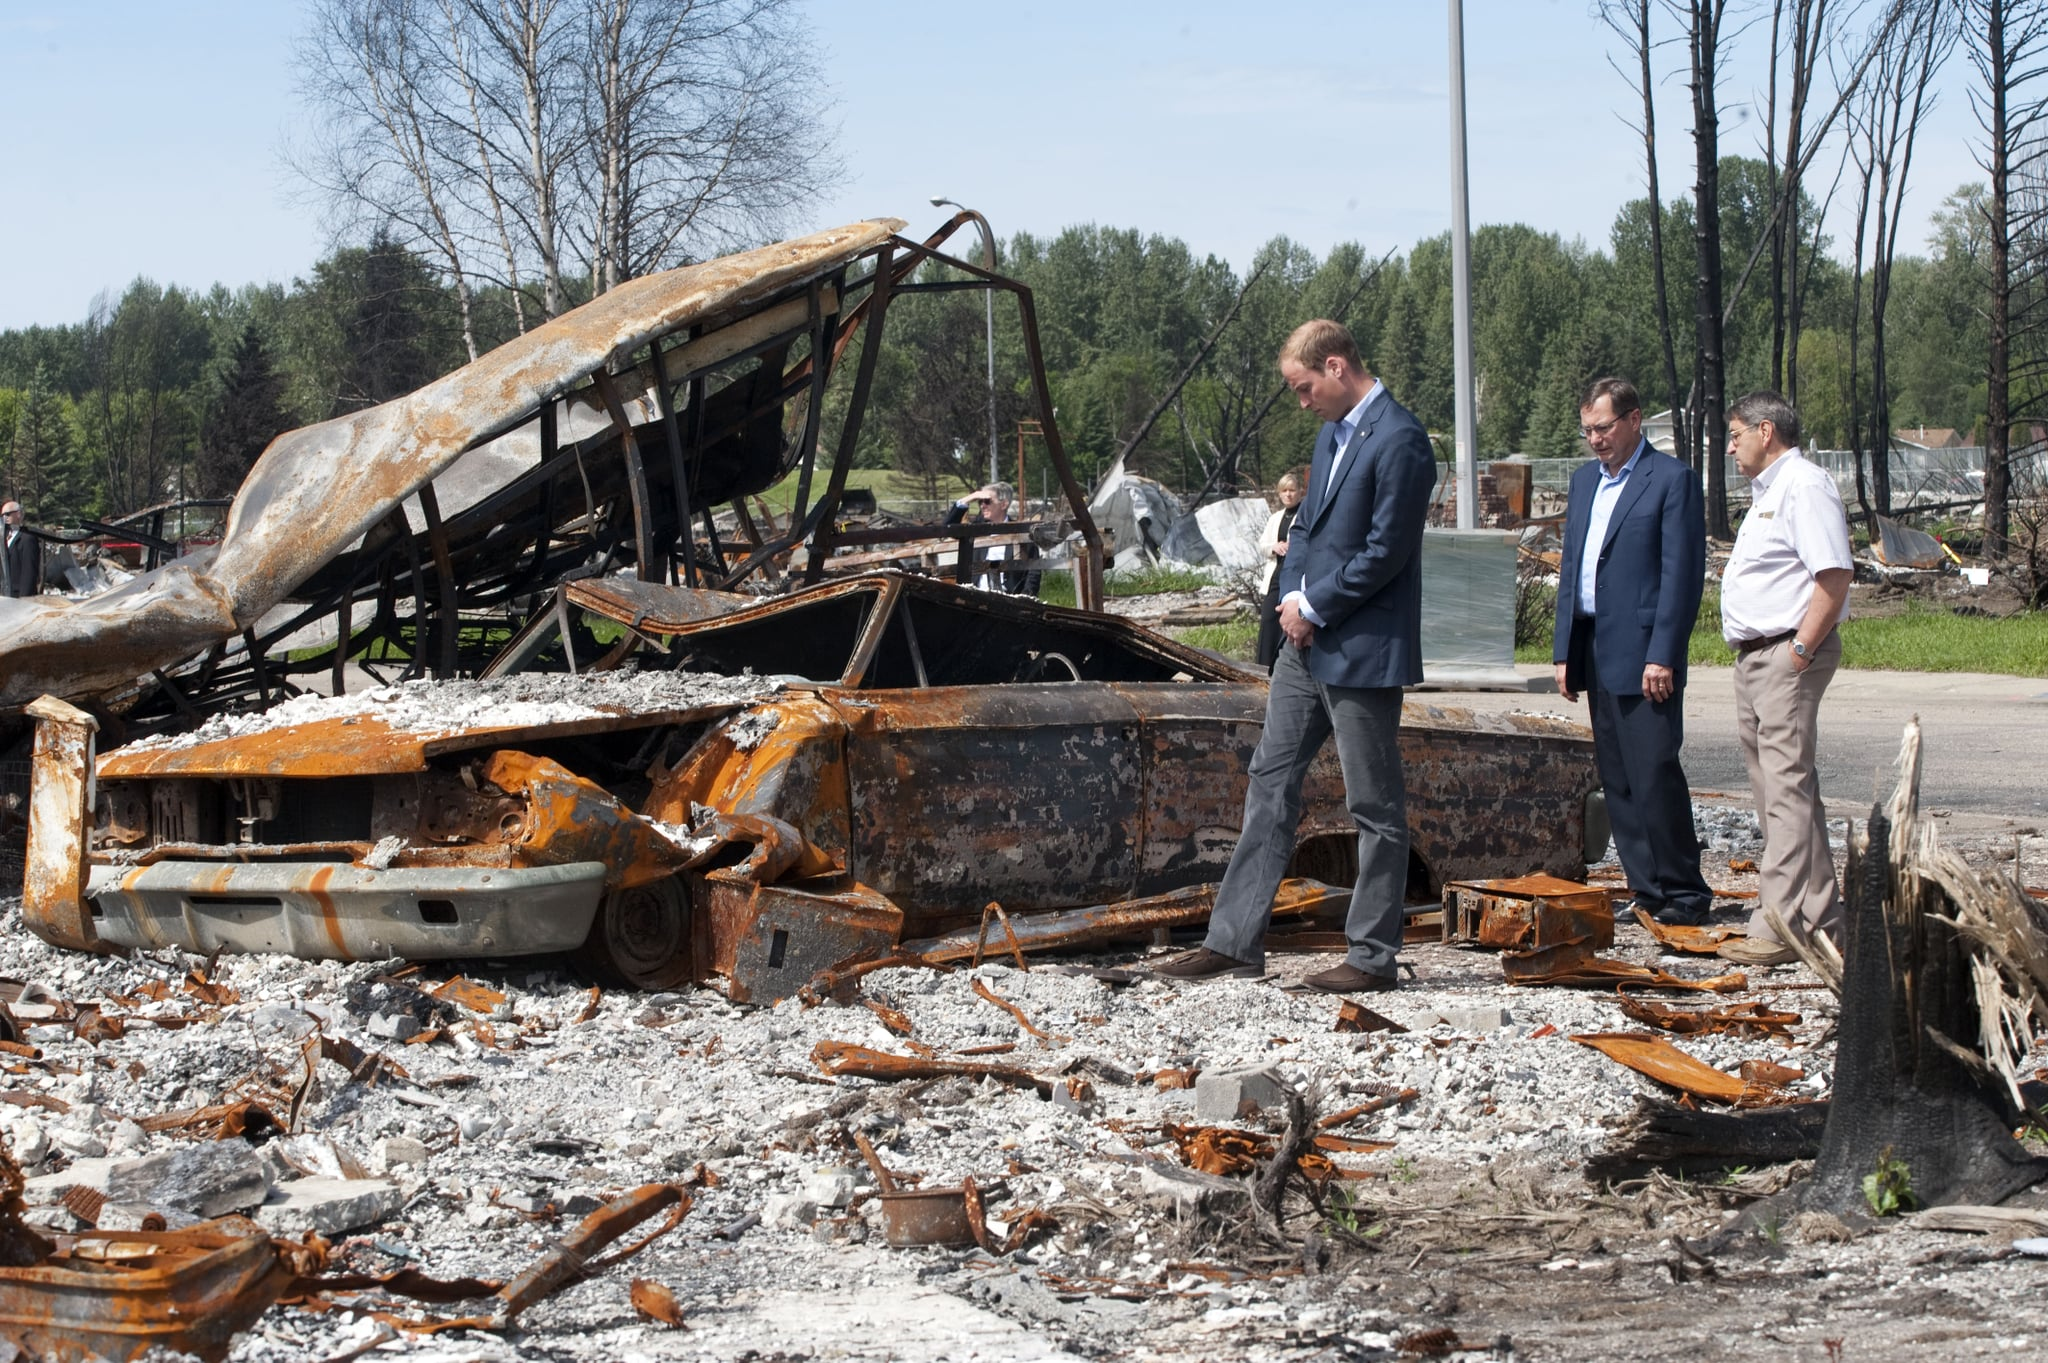 Prince William looks at fire damage in Alberta.